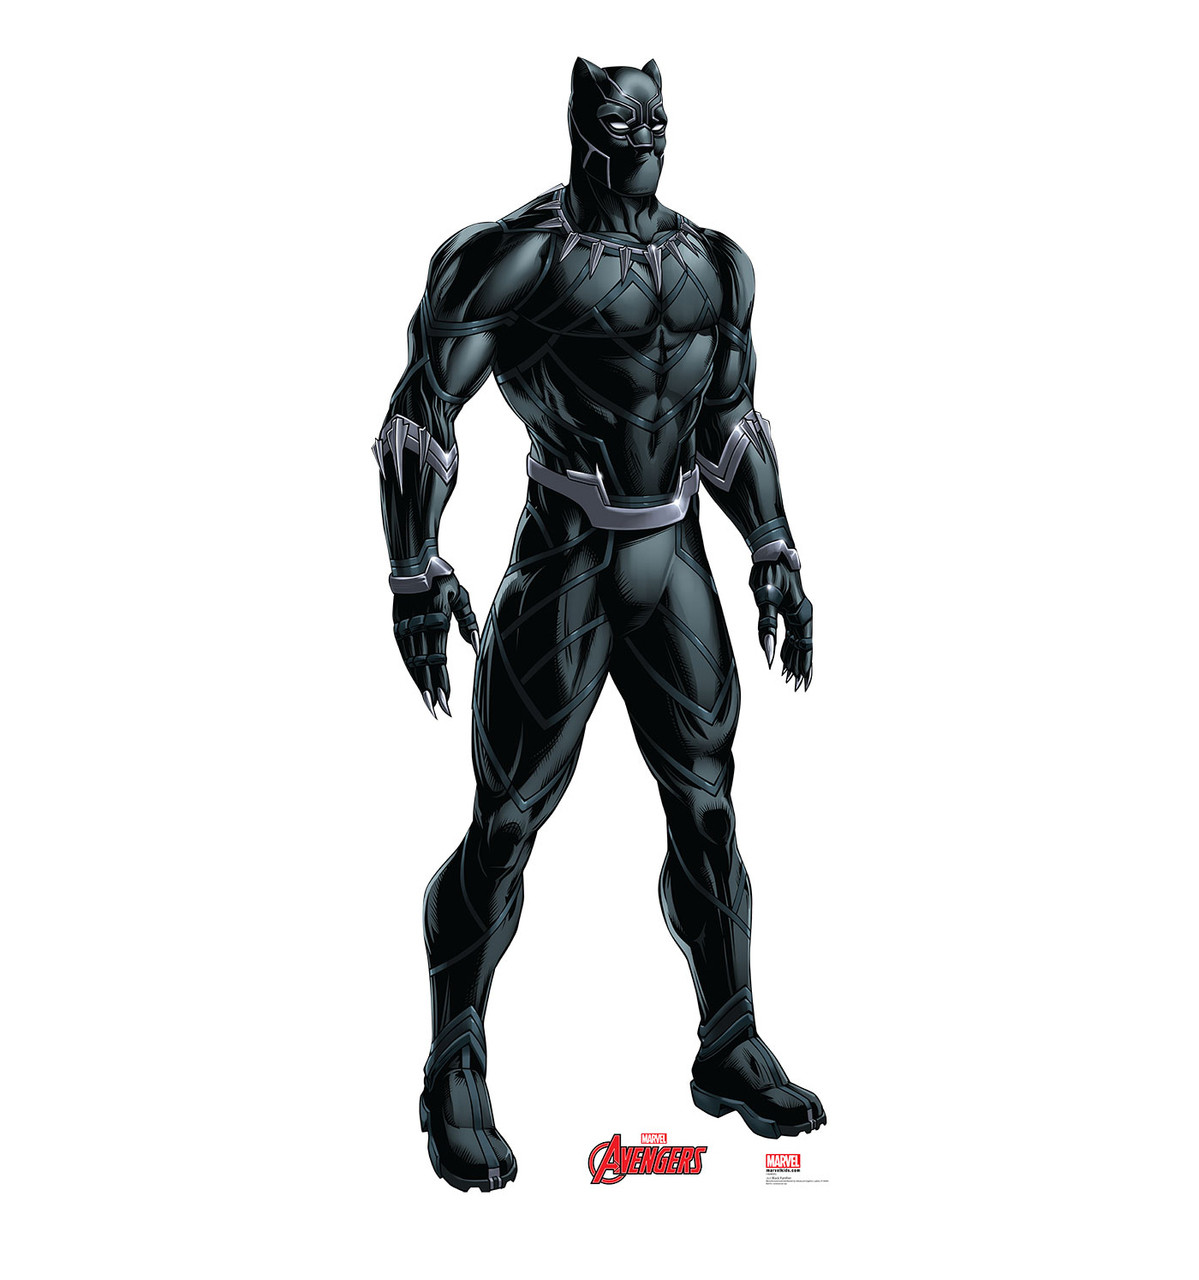 Life-size Black Panther (Avengers) Cardboard Standup